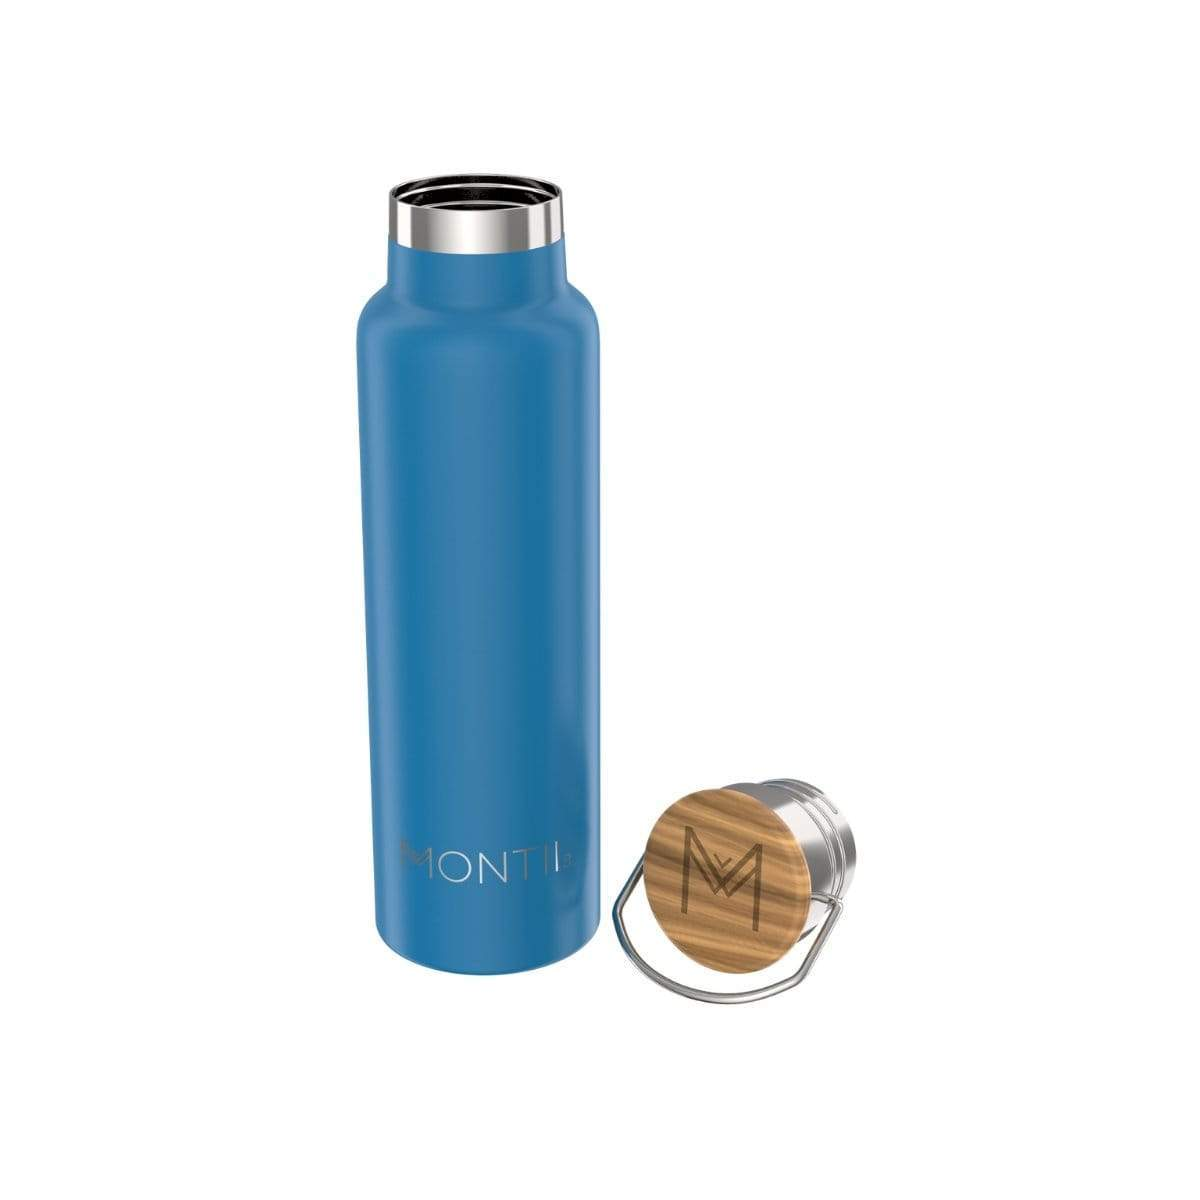 Montii Co Insulated Bottle 600ml Montii Water Bottles Royal Blue at Little Earth Nest Eco Shop